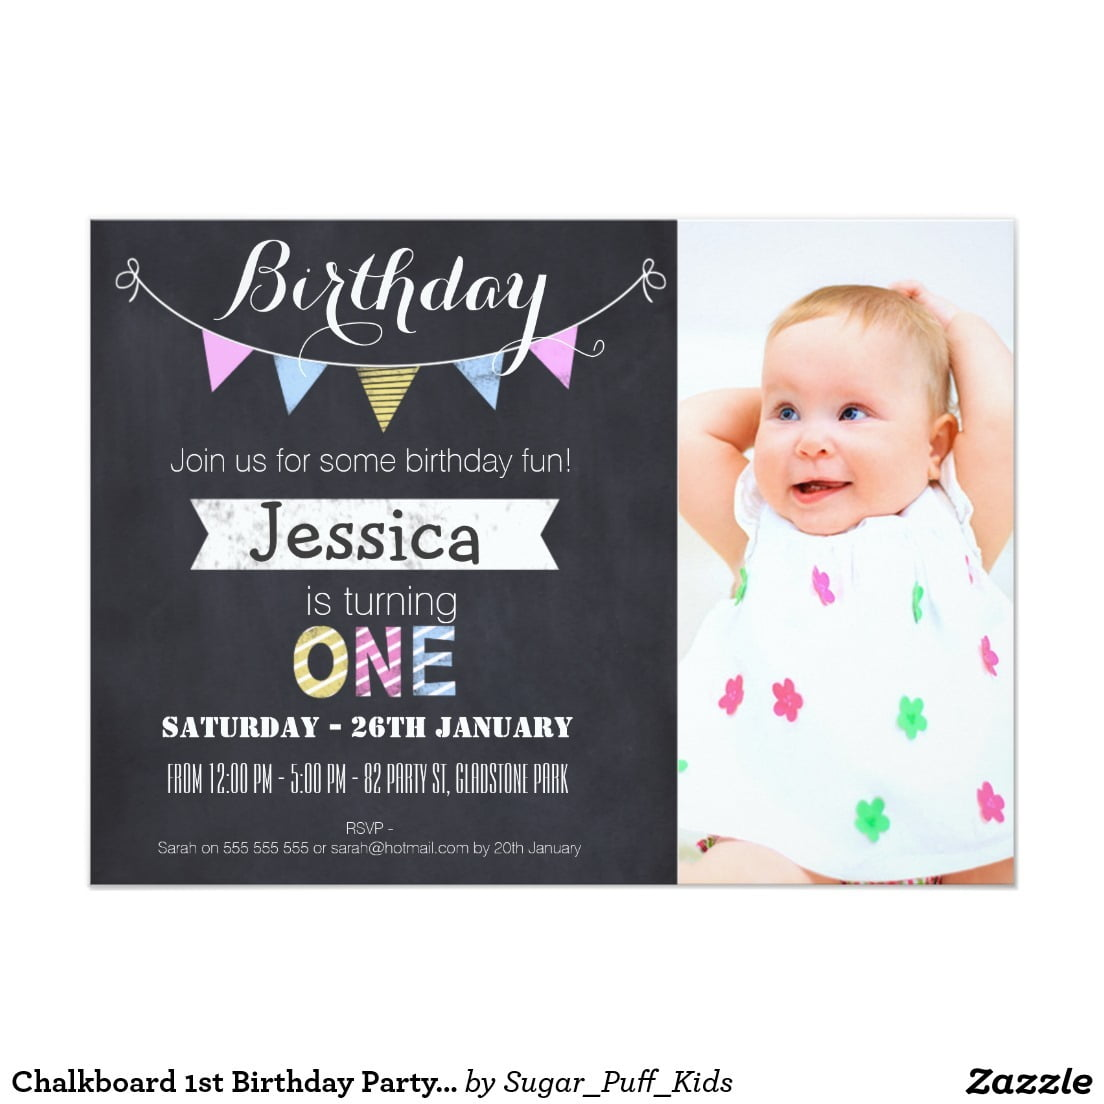 St Birthday Party Invitations By Way Of Using An Impressive Design